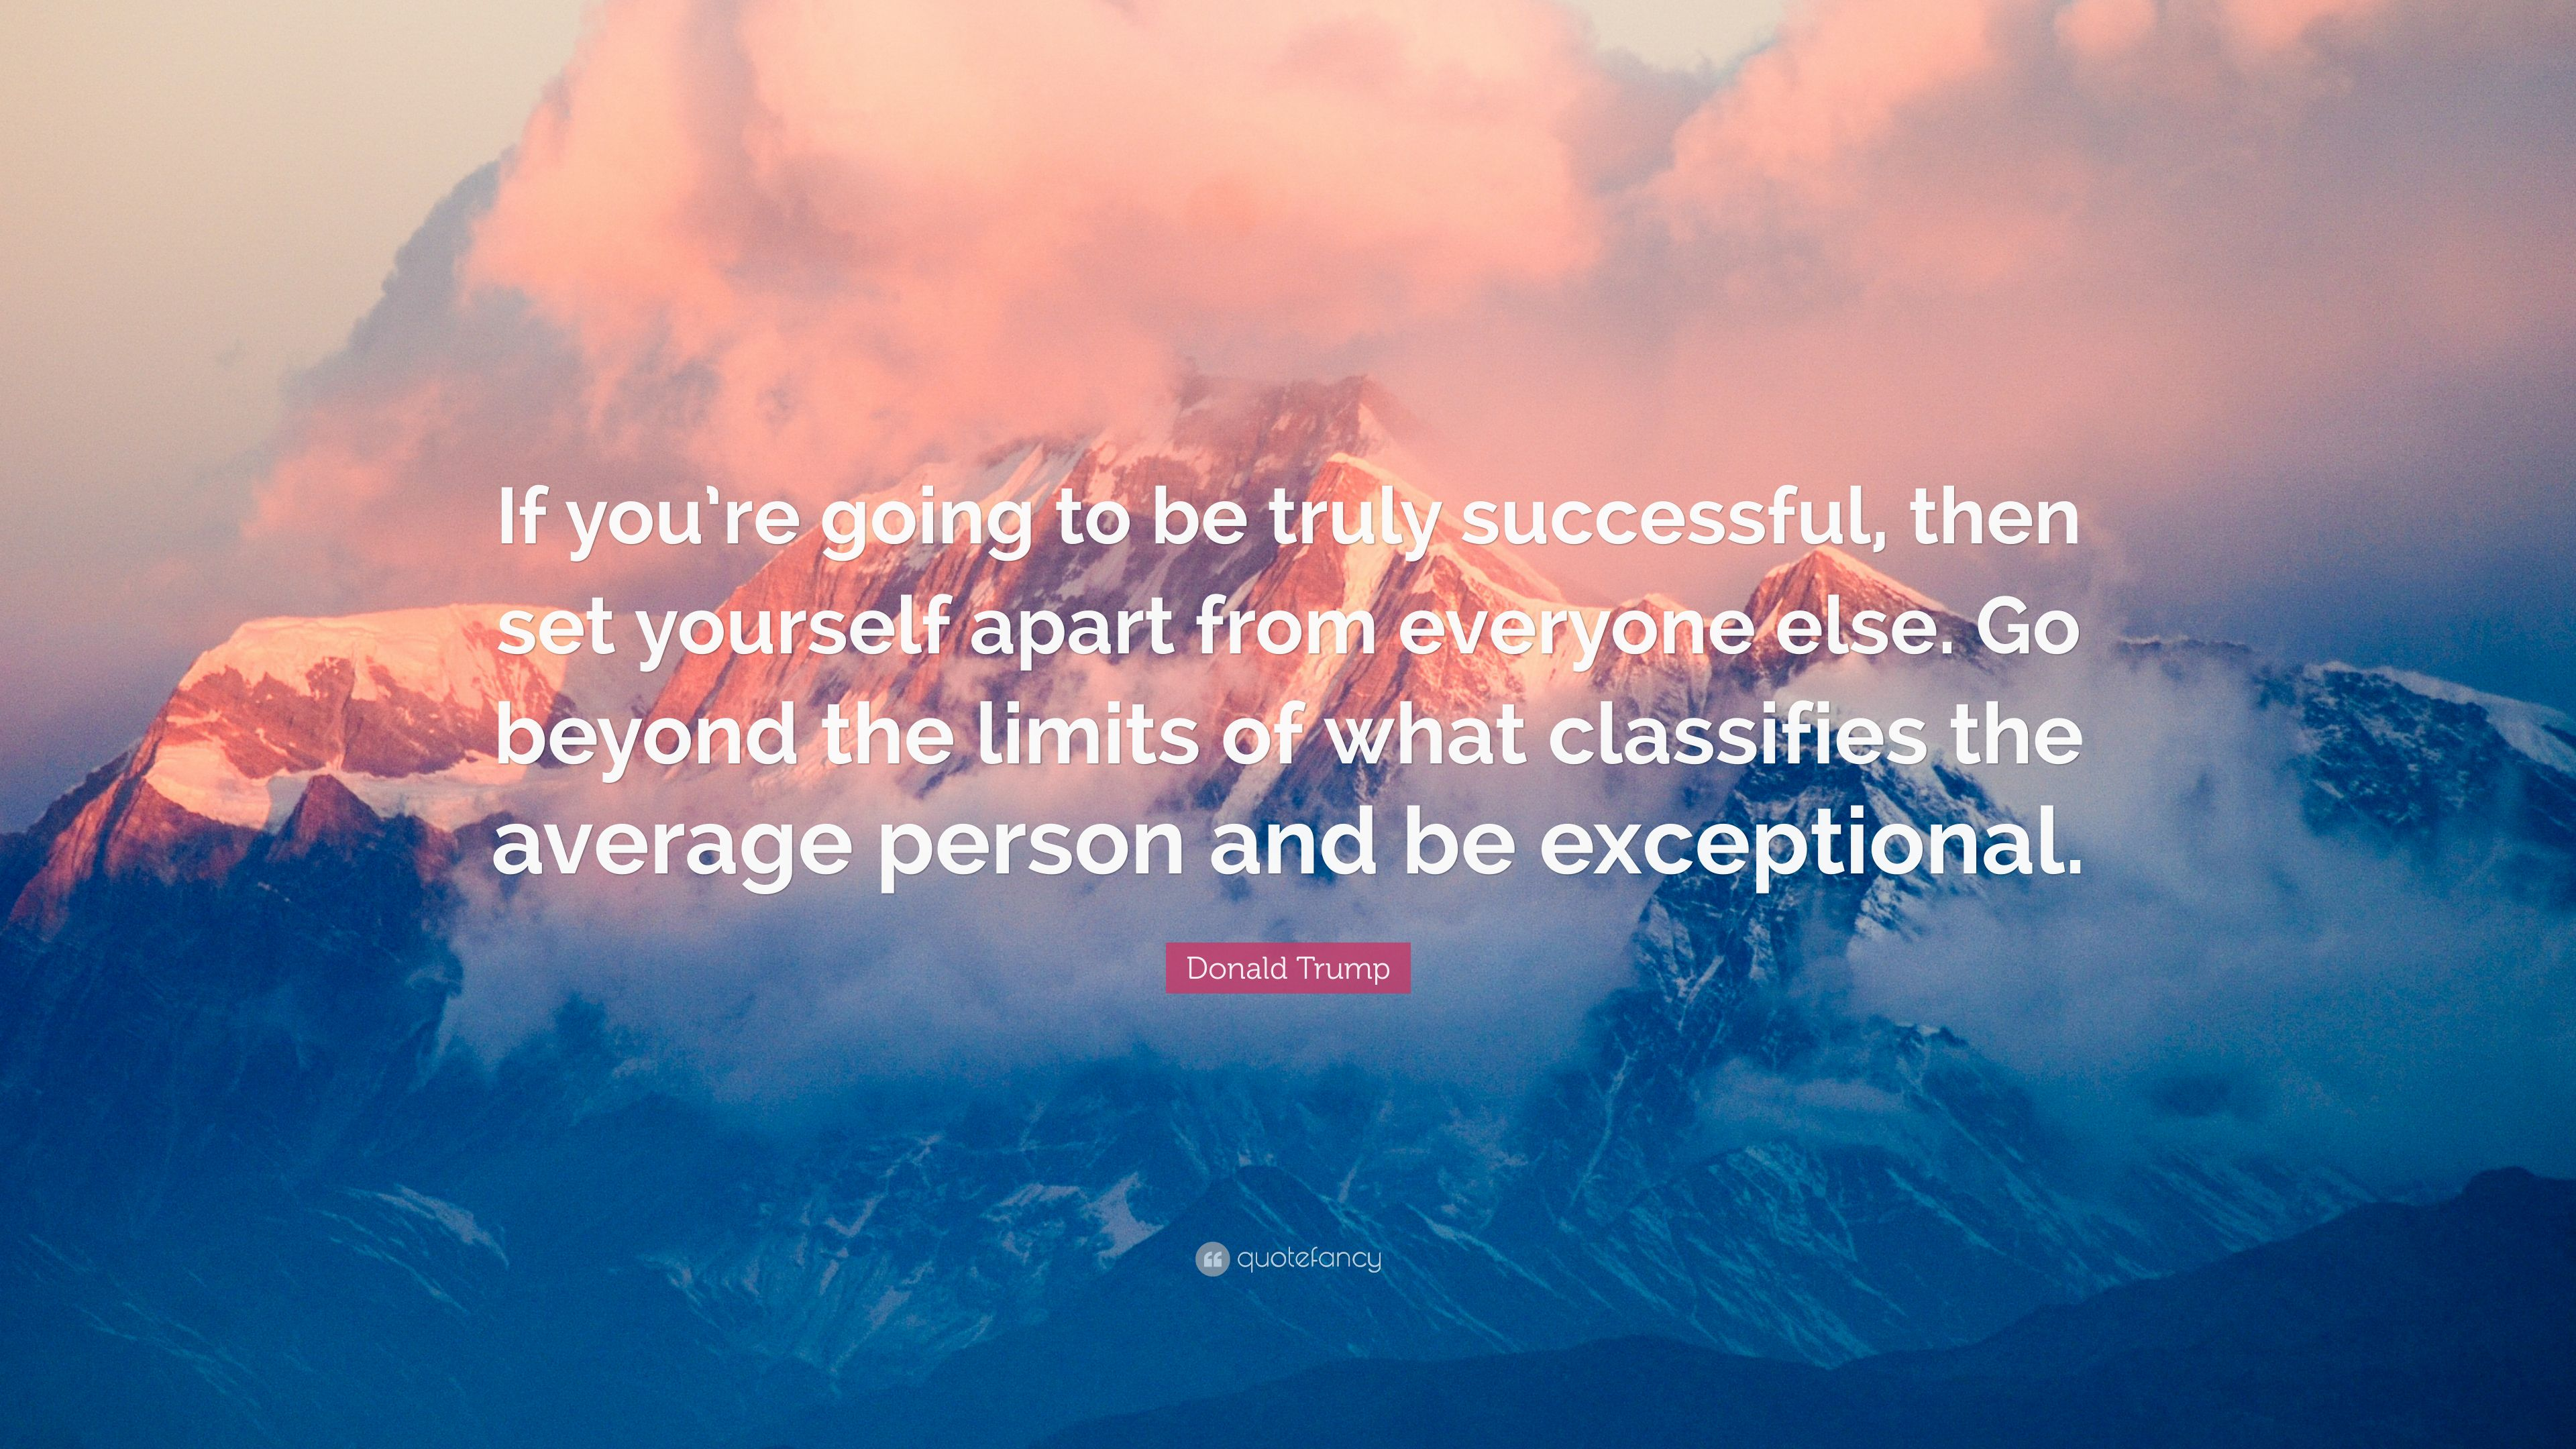 Donald Trump Quote: If youre going to be truly